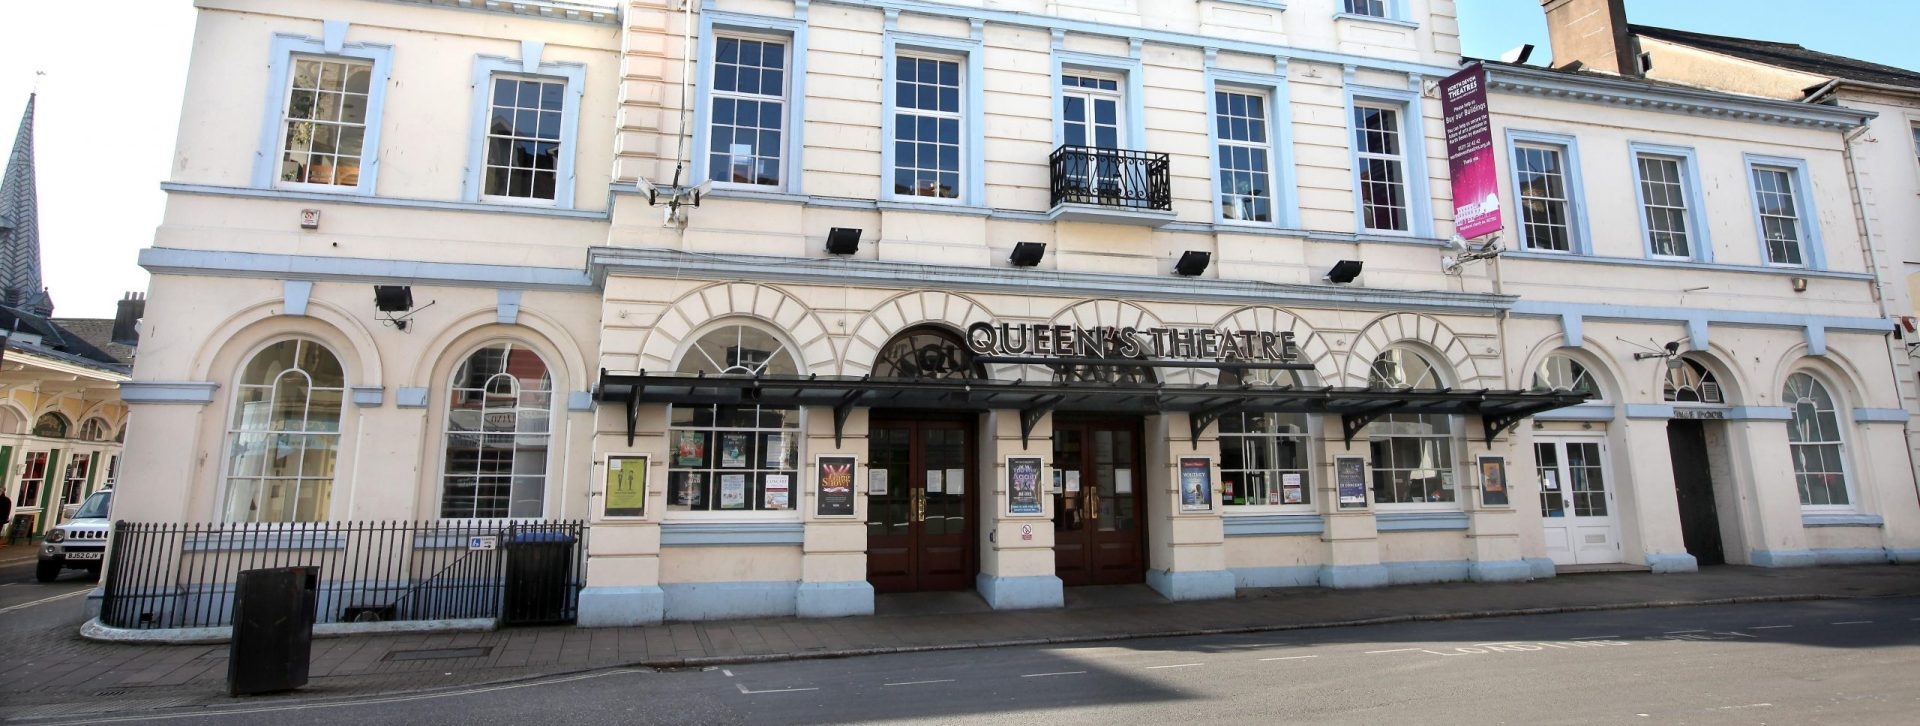 Your Visit to Queen's Theatre